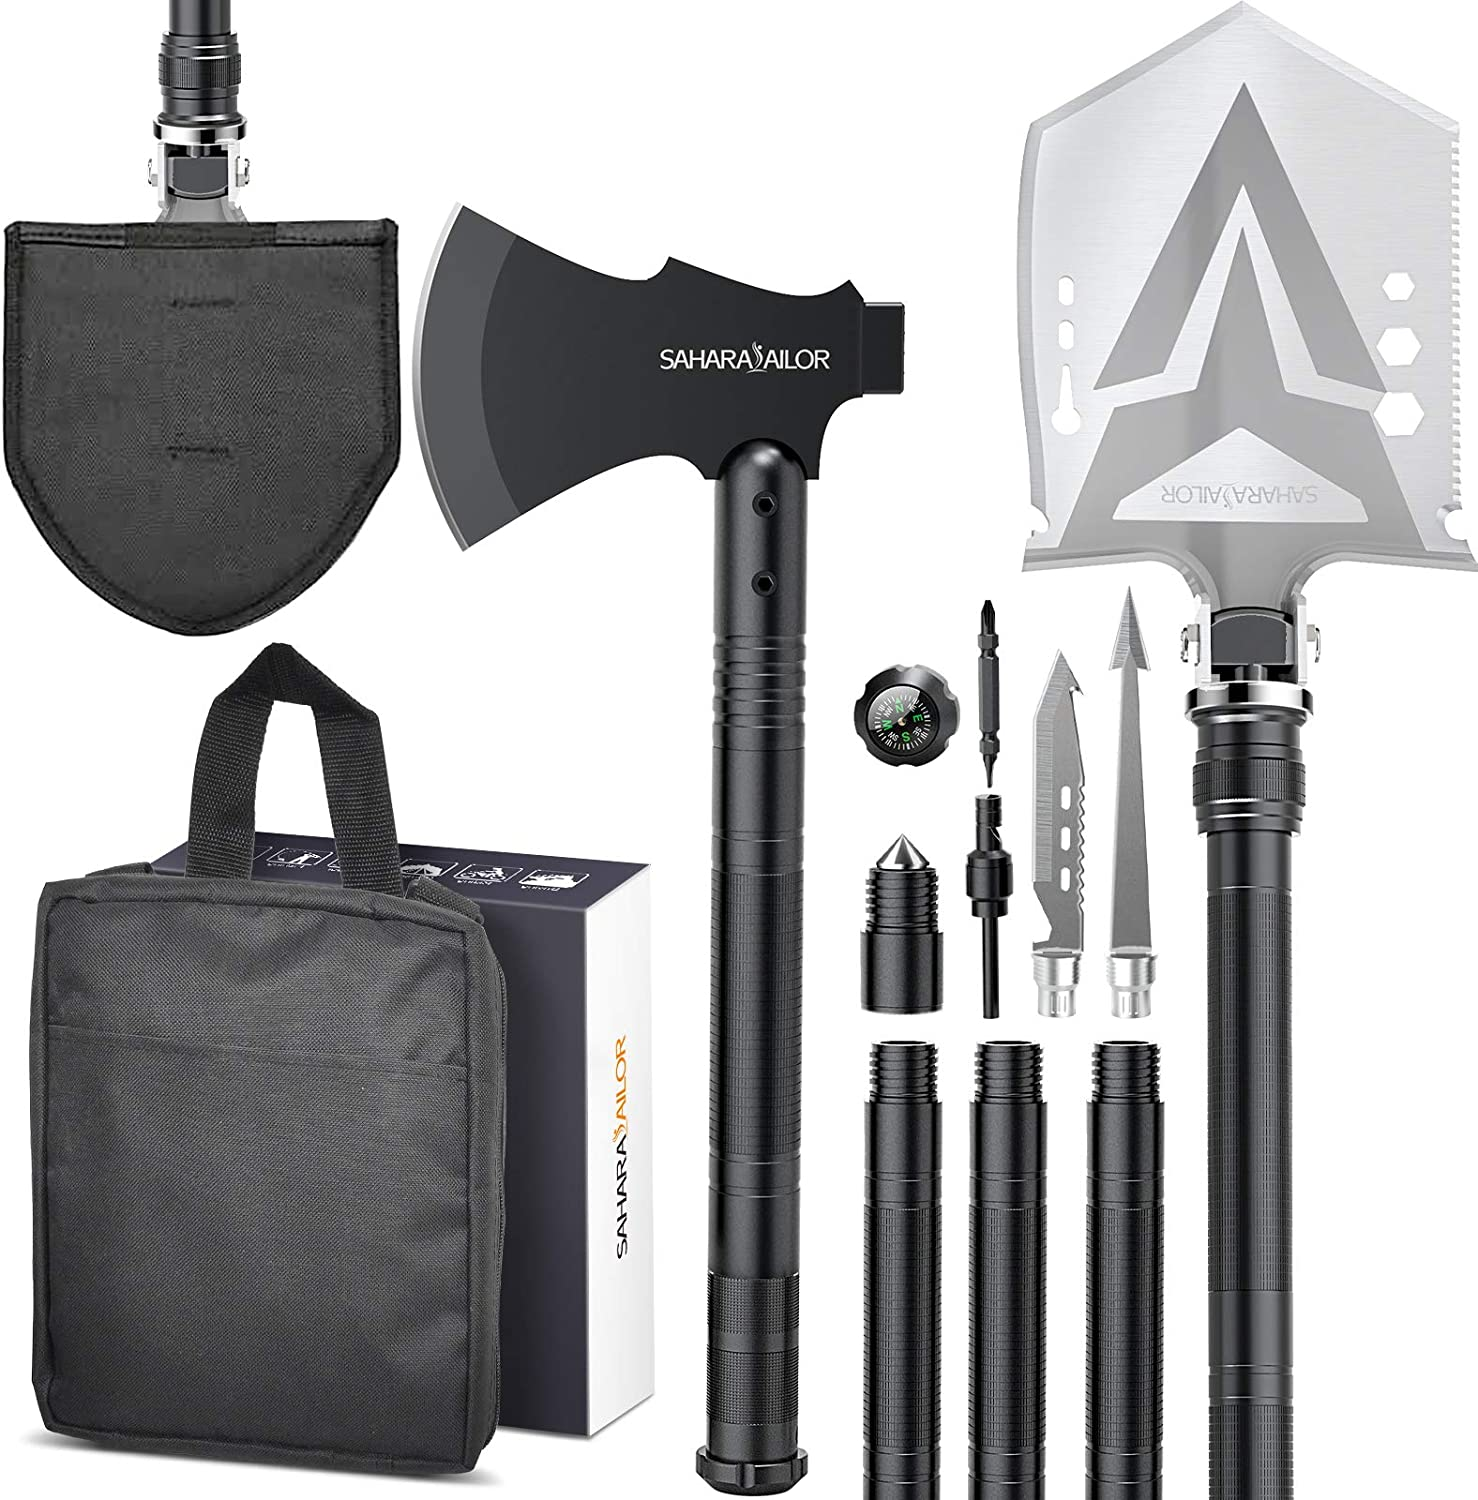 Sahara Sailor Survival Shovel with Axe, High Carbon Steel Tactical Shovel Camping Shovel Hatchet Combo - 4 Thicken Extension Handles, 20-39.5 Inch Survival Gear and Equipment for Hiking Camping